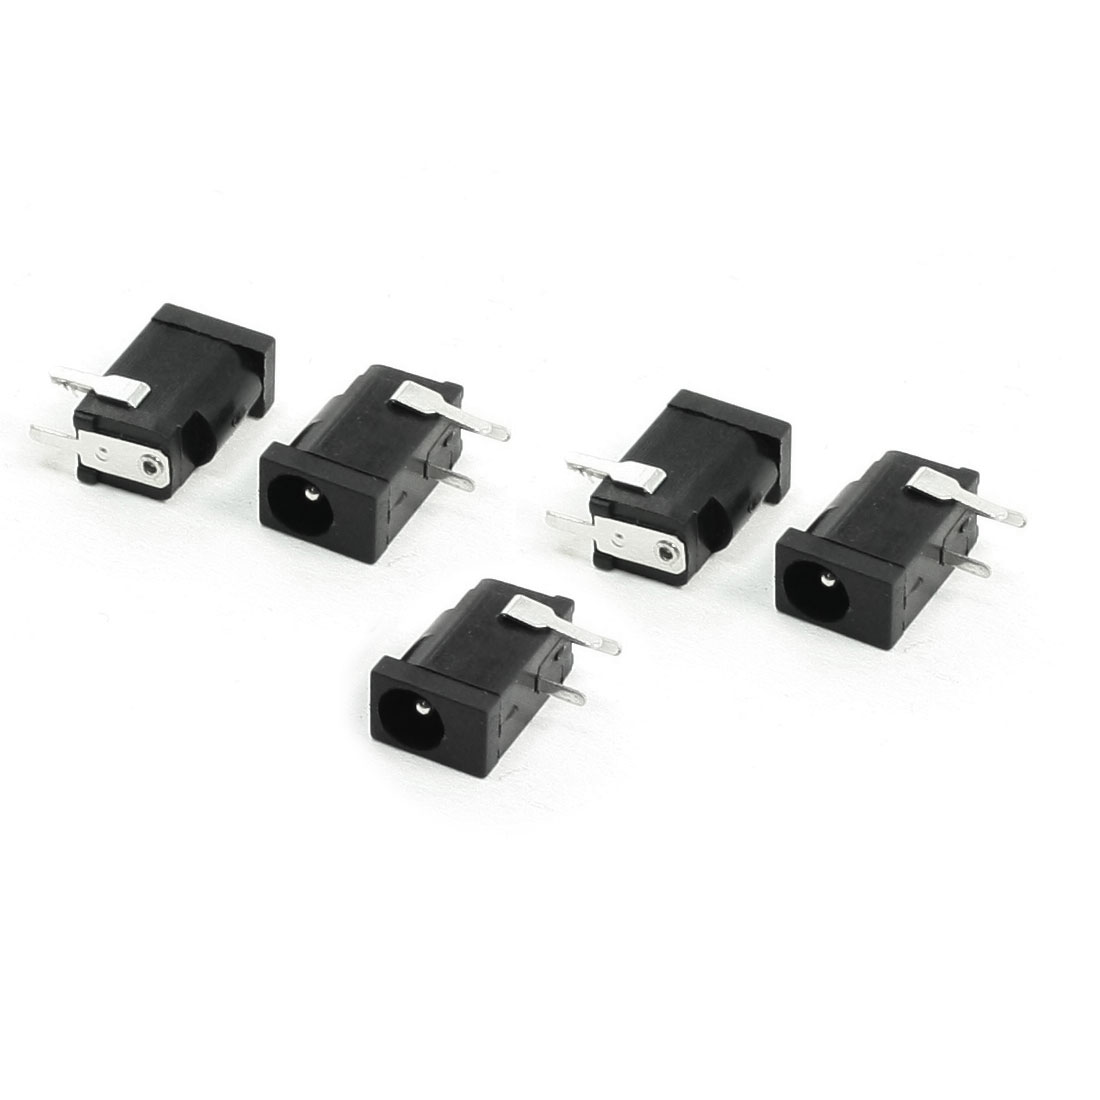 Right Angle 3 Pin DIP PCB Mount 3.5mm Stereo Jacks Connectors 5 pcs